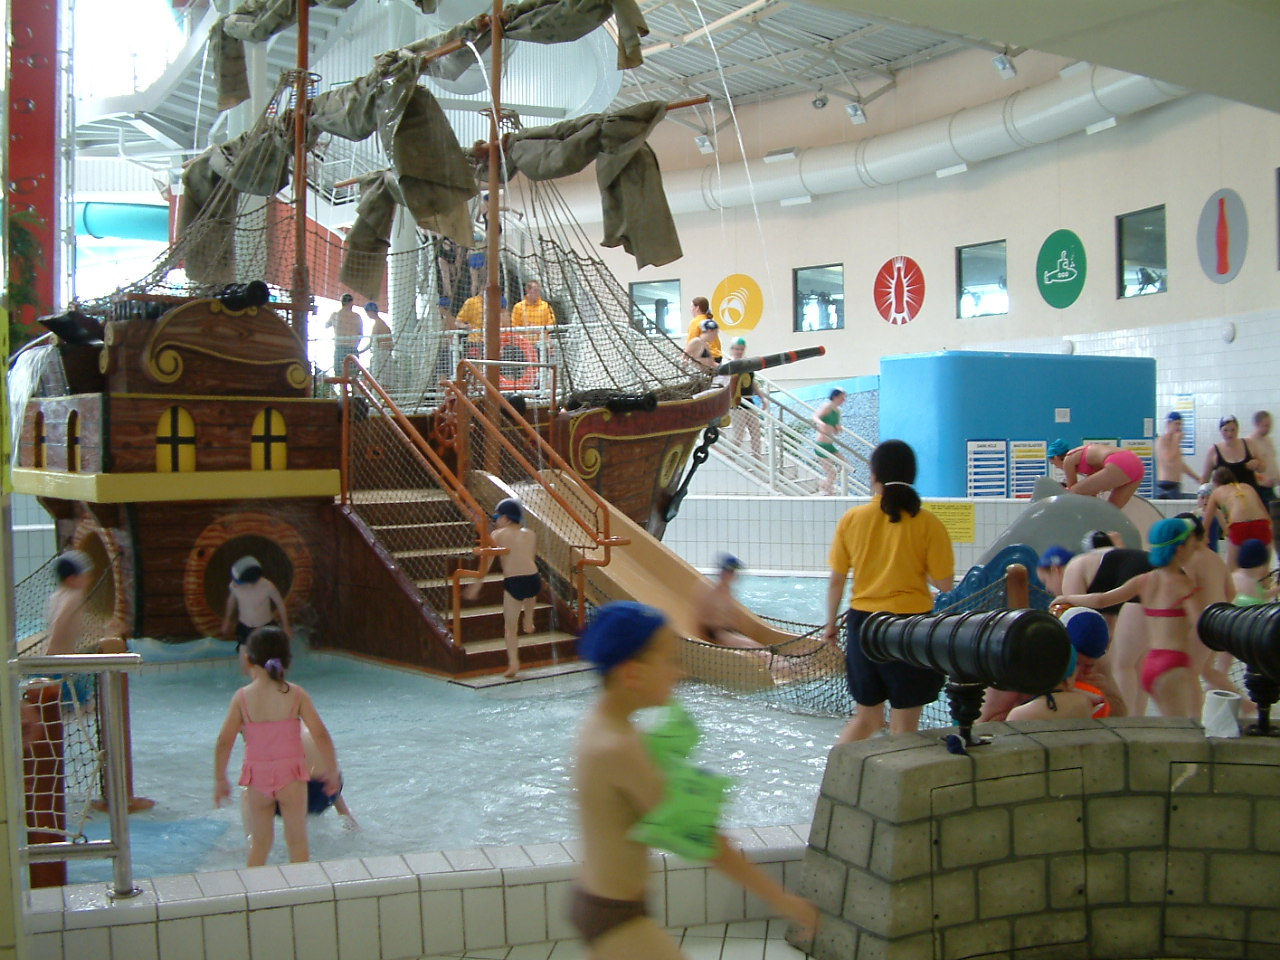 Children playing in the water and on the Pirate Ship